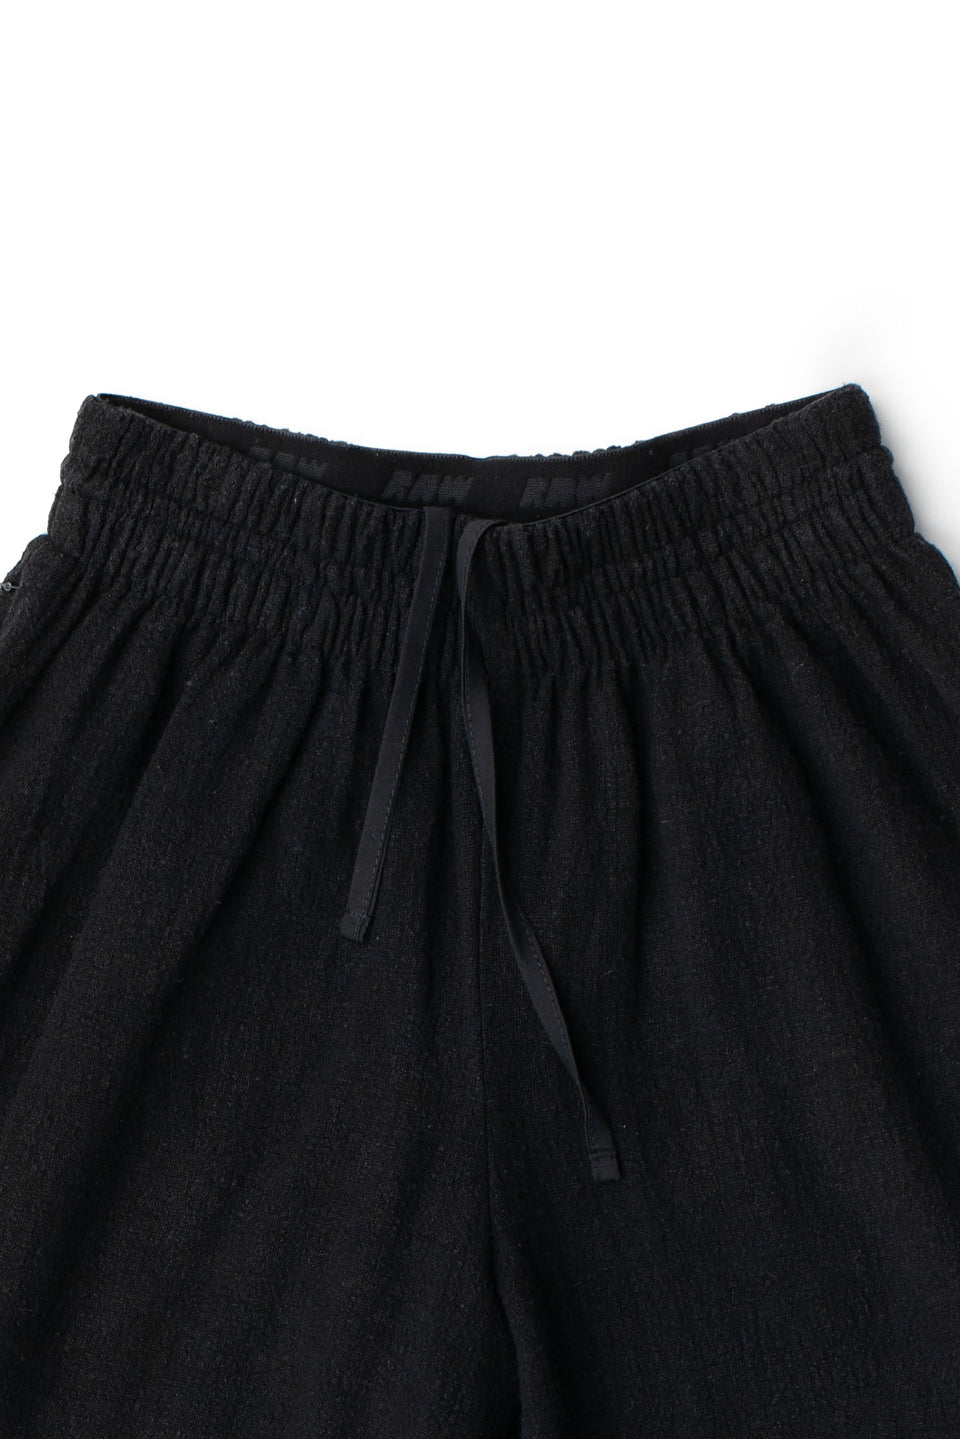 RAW Men Regular Shorts Black